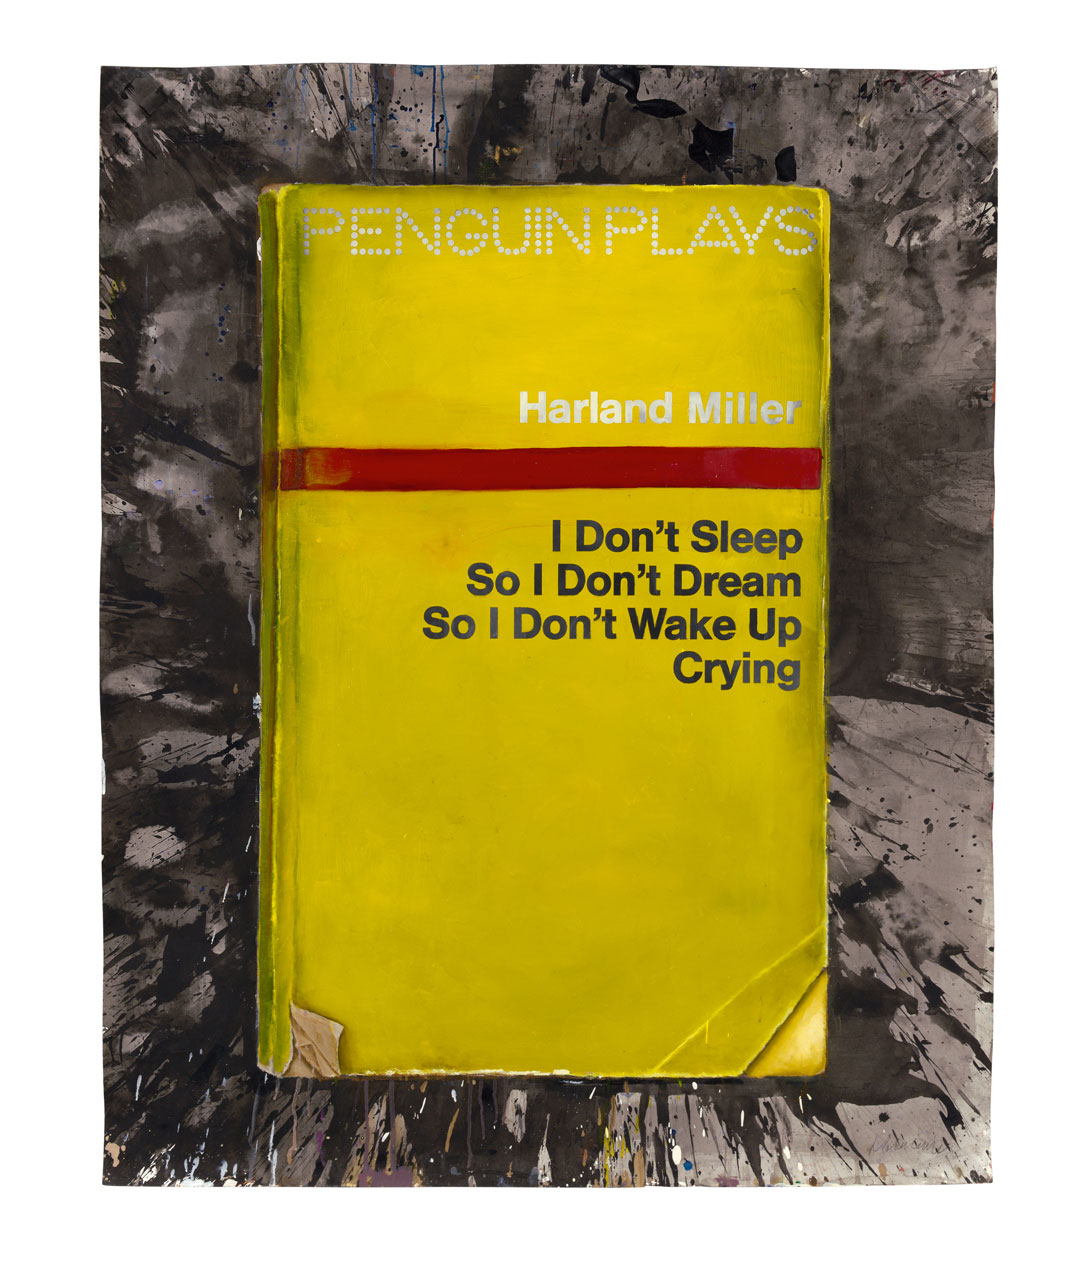 I Don't Sleep So I Don't Dream So I Don't Wake Up Crying (2013) by Harland Miller